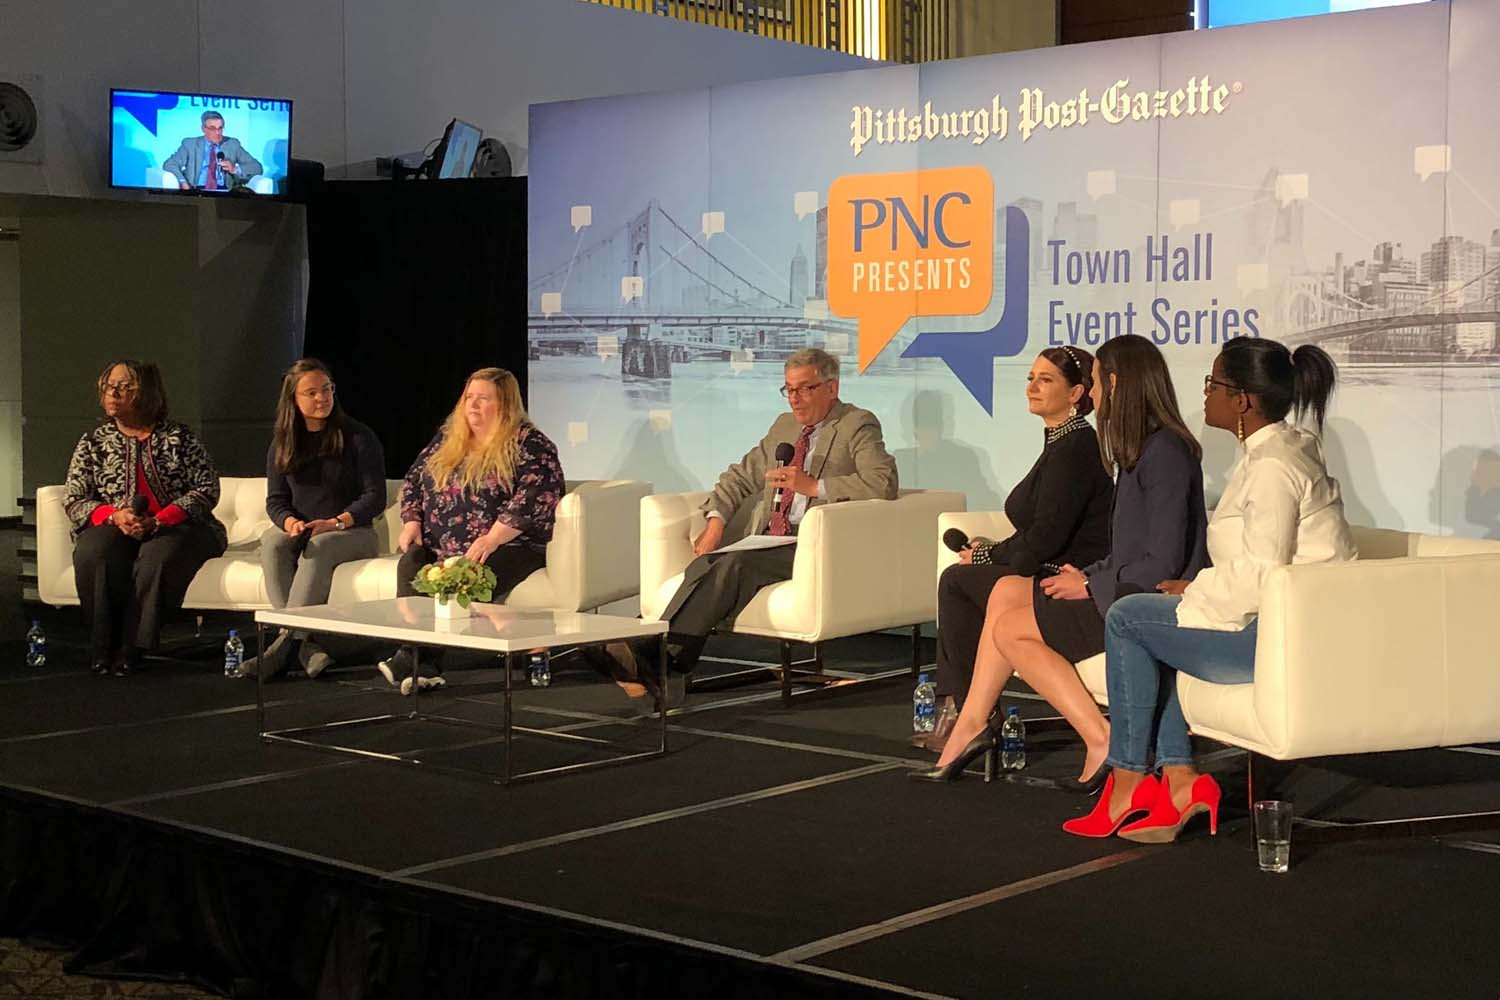 """David Shribman, moderator at """"PNC Presents Mental Health: Helping Our Kids Find the Light,"""" leads the panel's discussion on rising rates of depression in youth populations across the nation."""